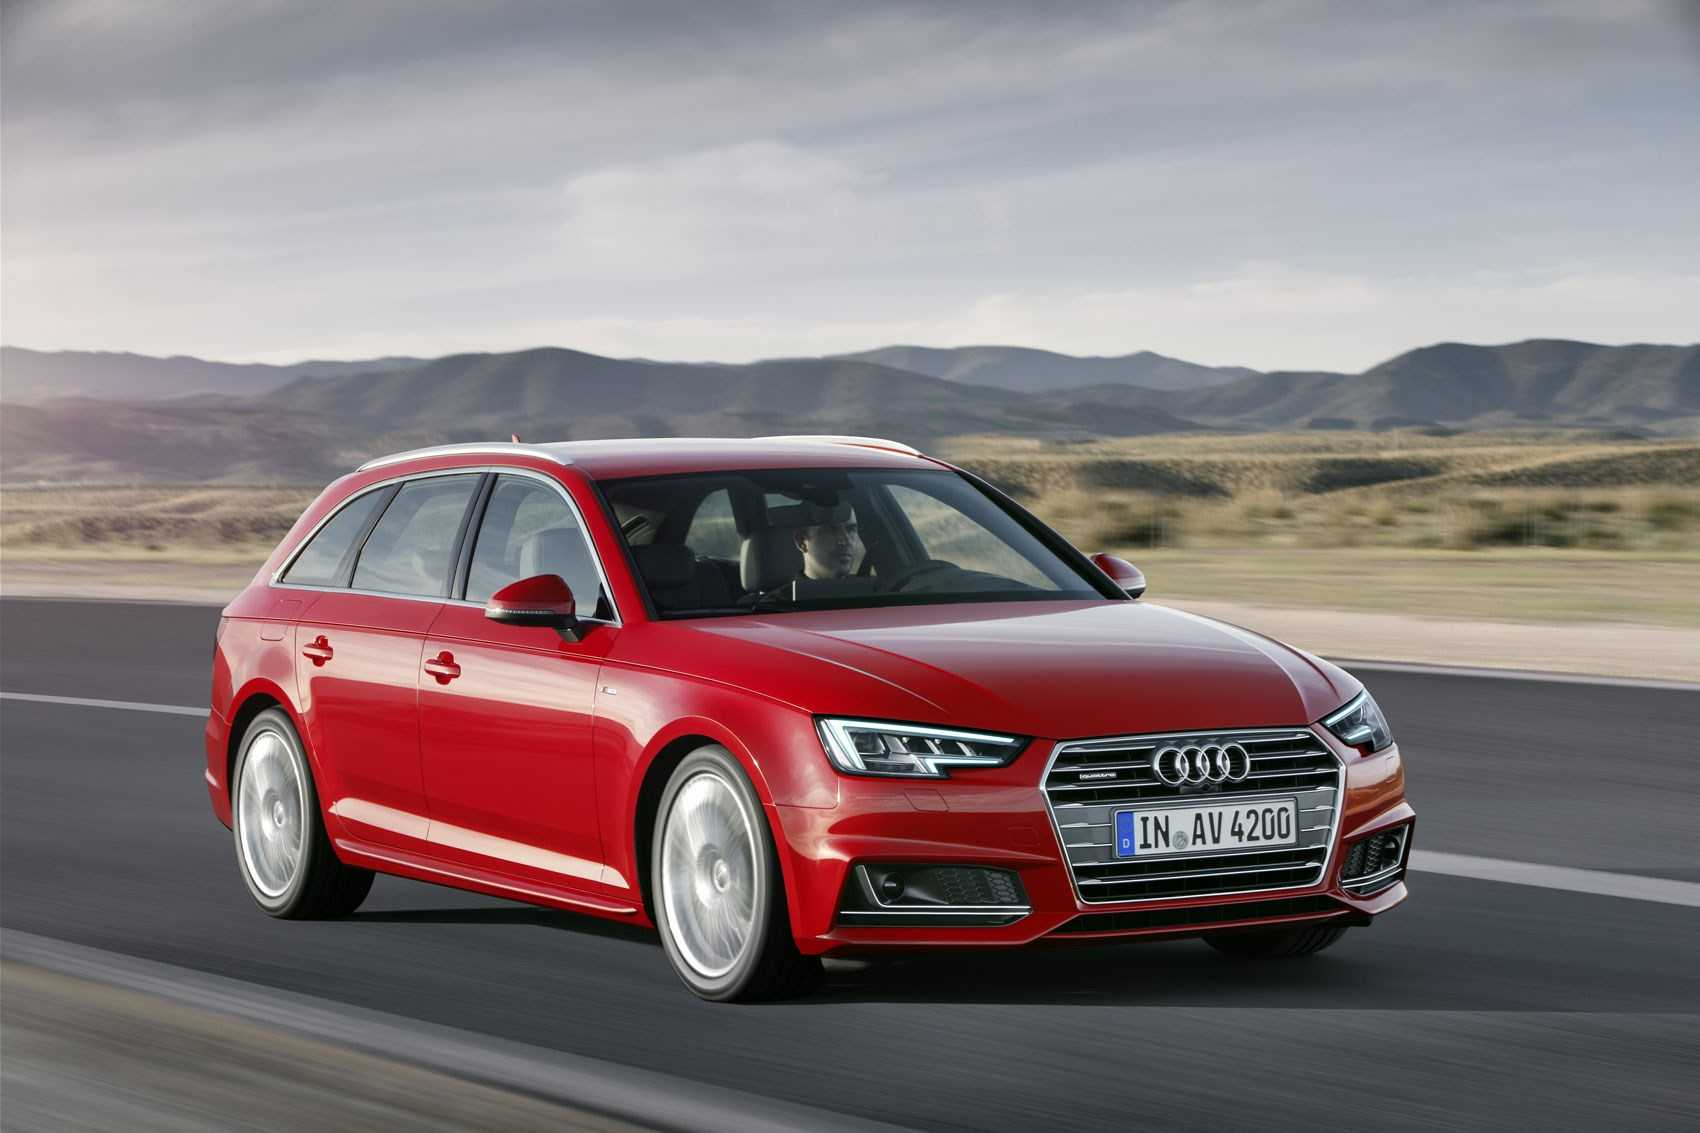 2016 Audi A4 has a Lightweight Body to Improve Acceleration and Fuel Efficiency